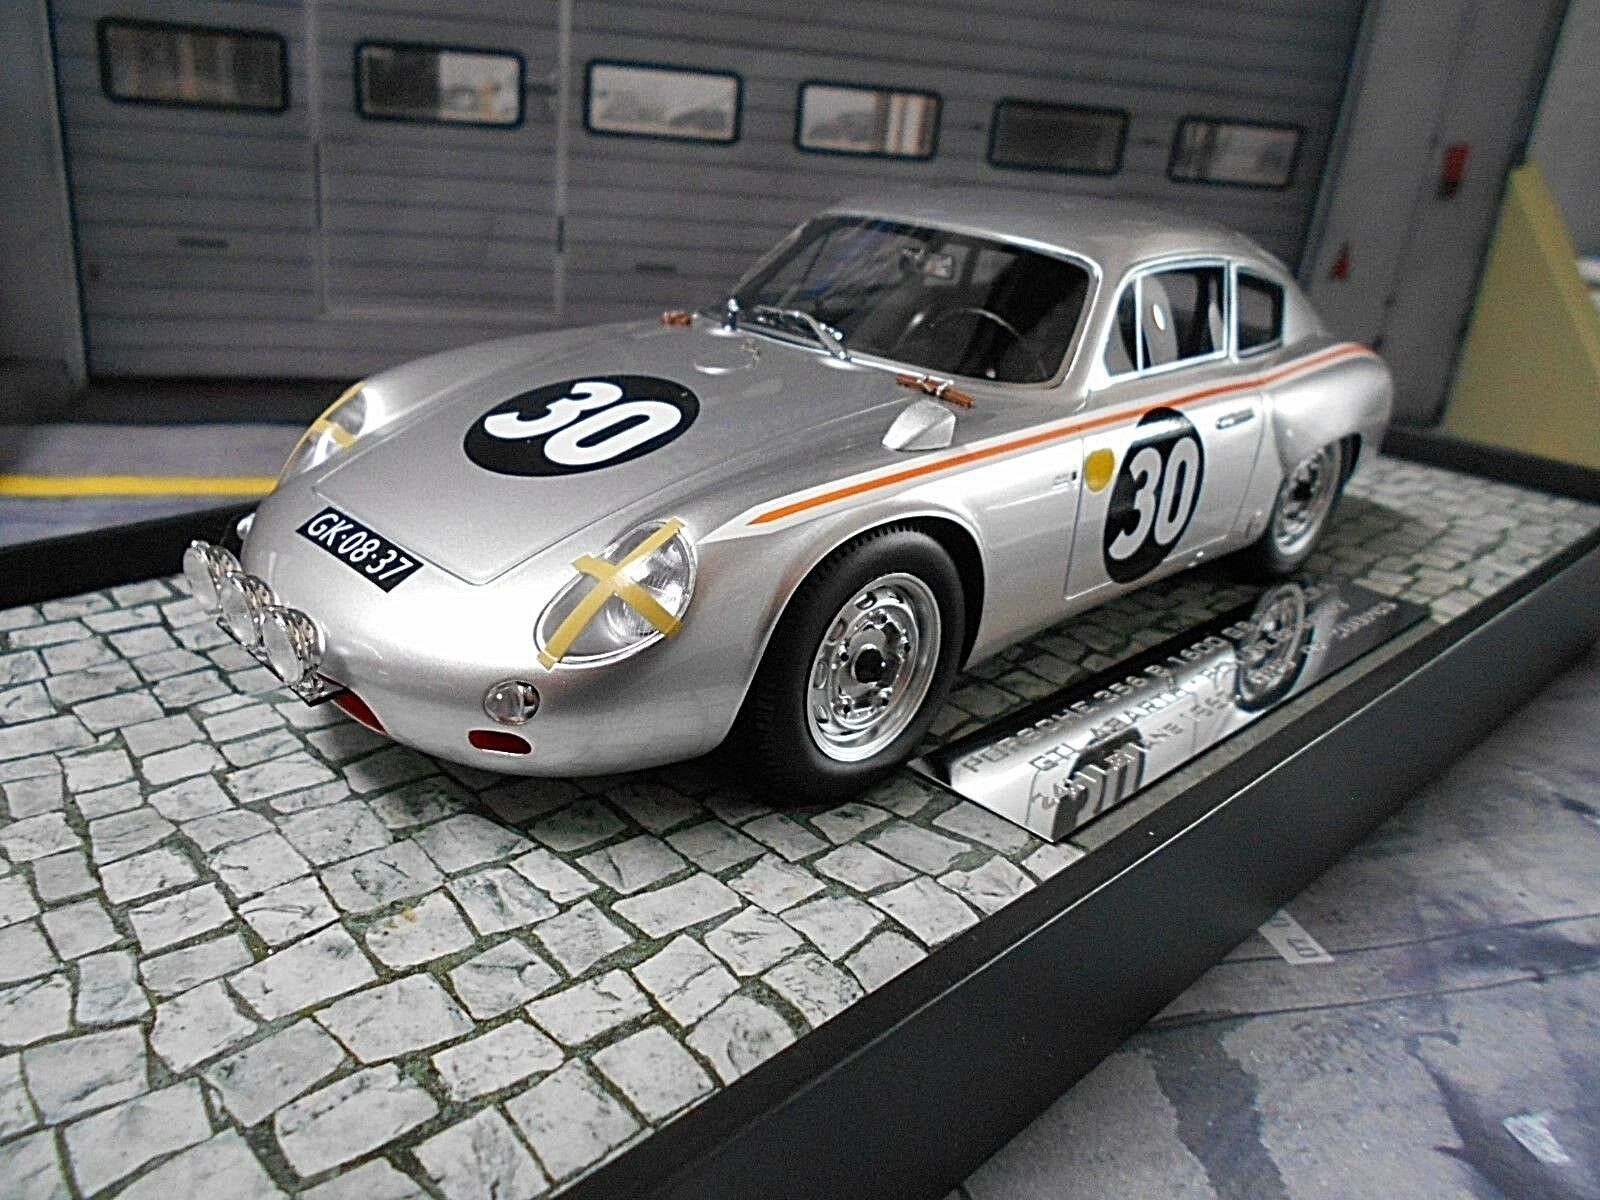 PORSCHE 356 B 1600 GS Carrera GTL Abarth Le Mans 1962  33 PON re Minichamps 1 18